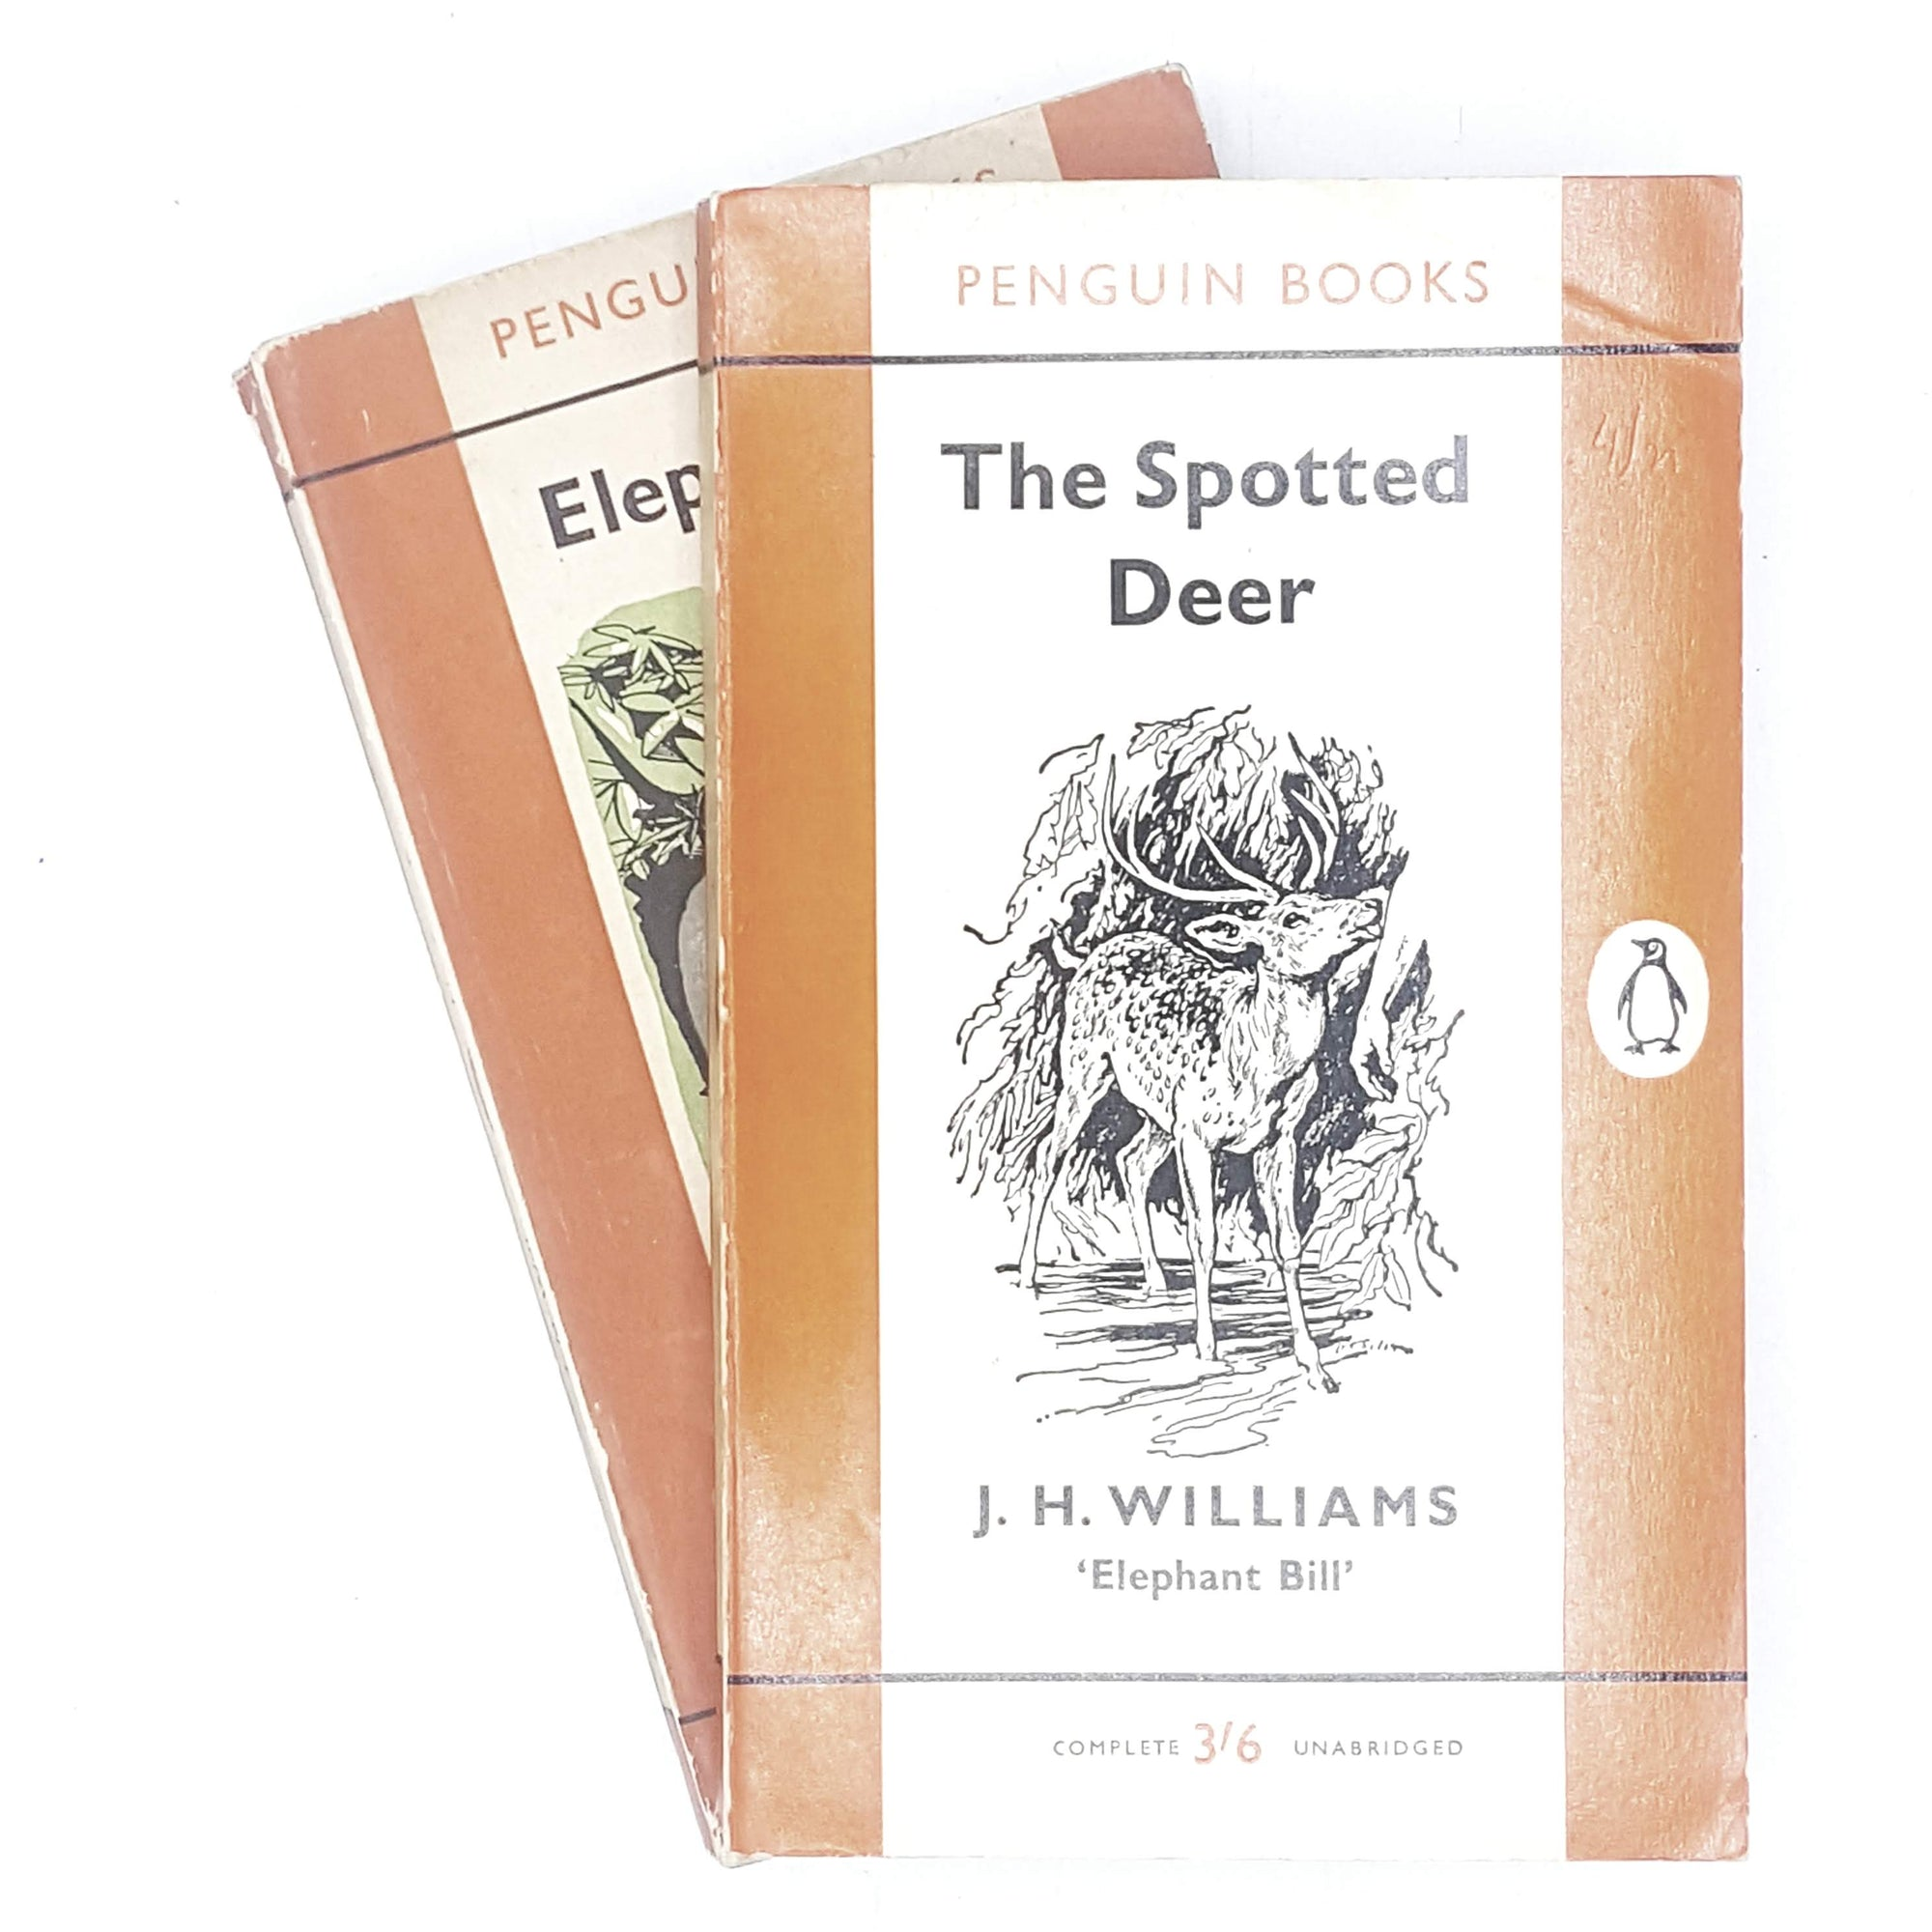 first-edition-penguin-collection-orange-williamss-elephant-bill-and-the-spotted-deer-country-house-library